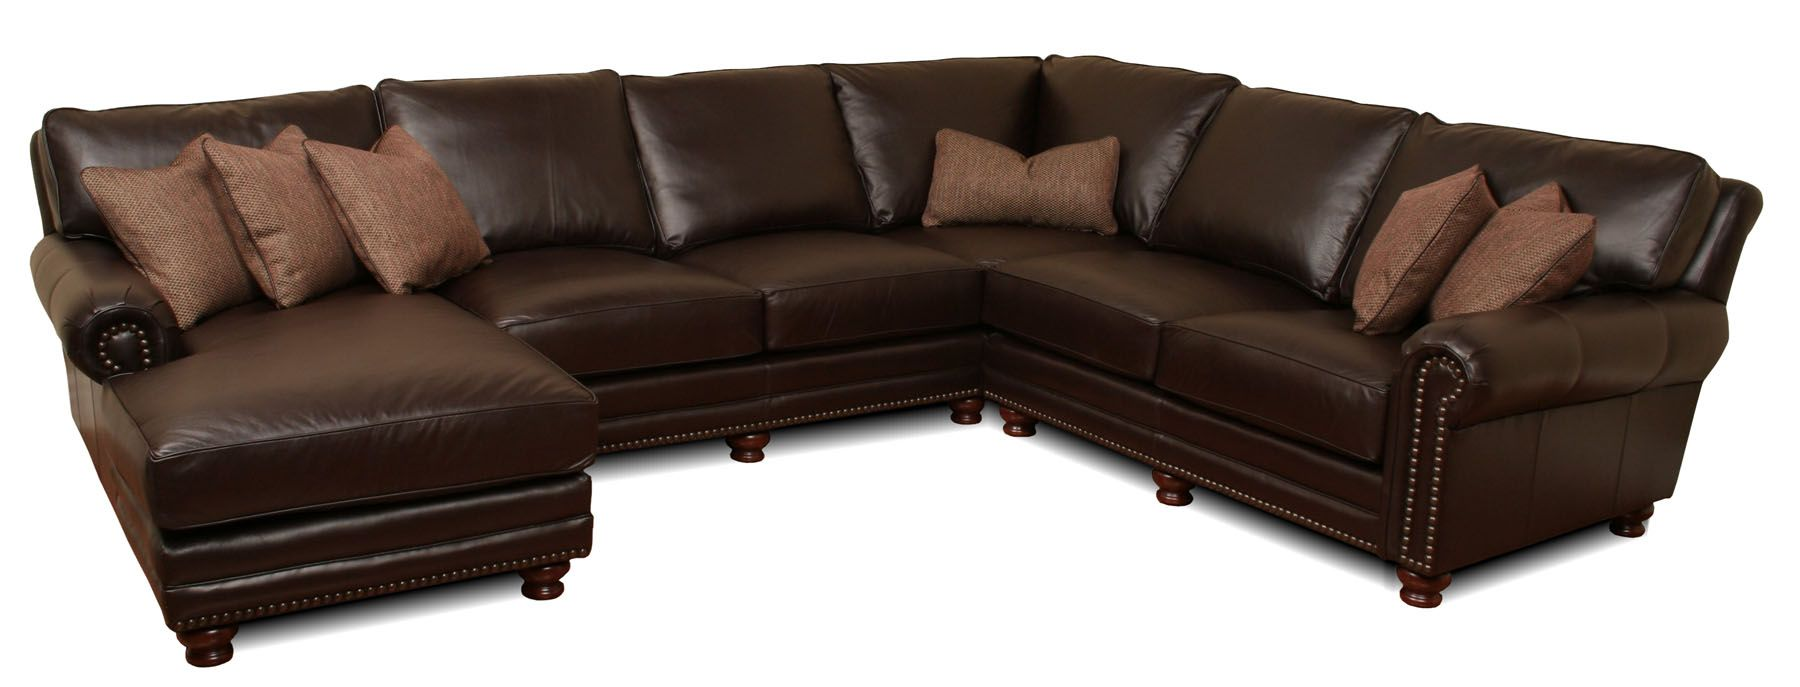 pin by sofascouch on sofas couches in 2018 pinterest sofa rh pinterest com